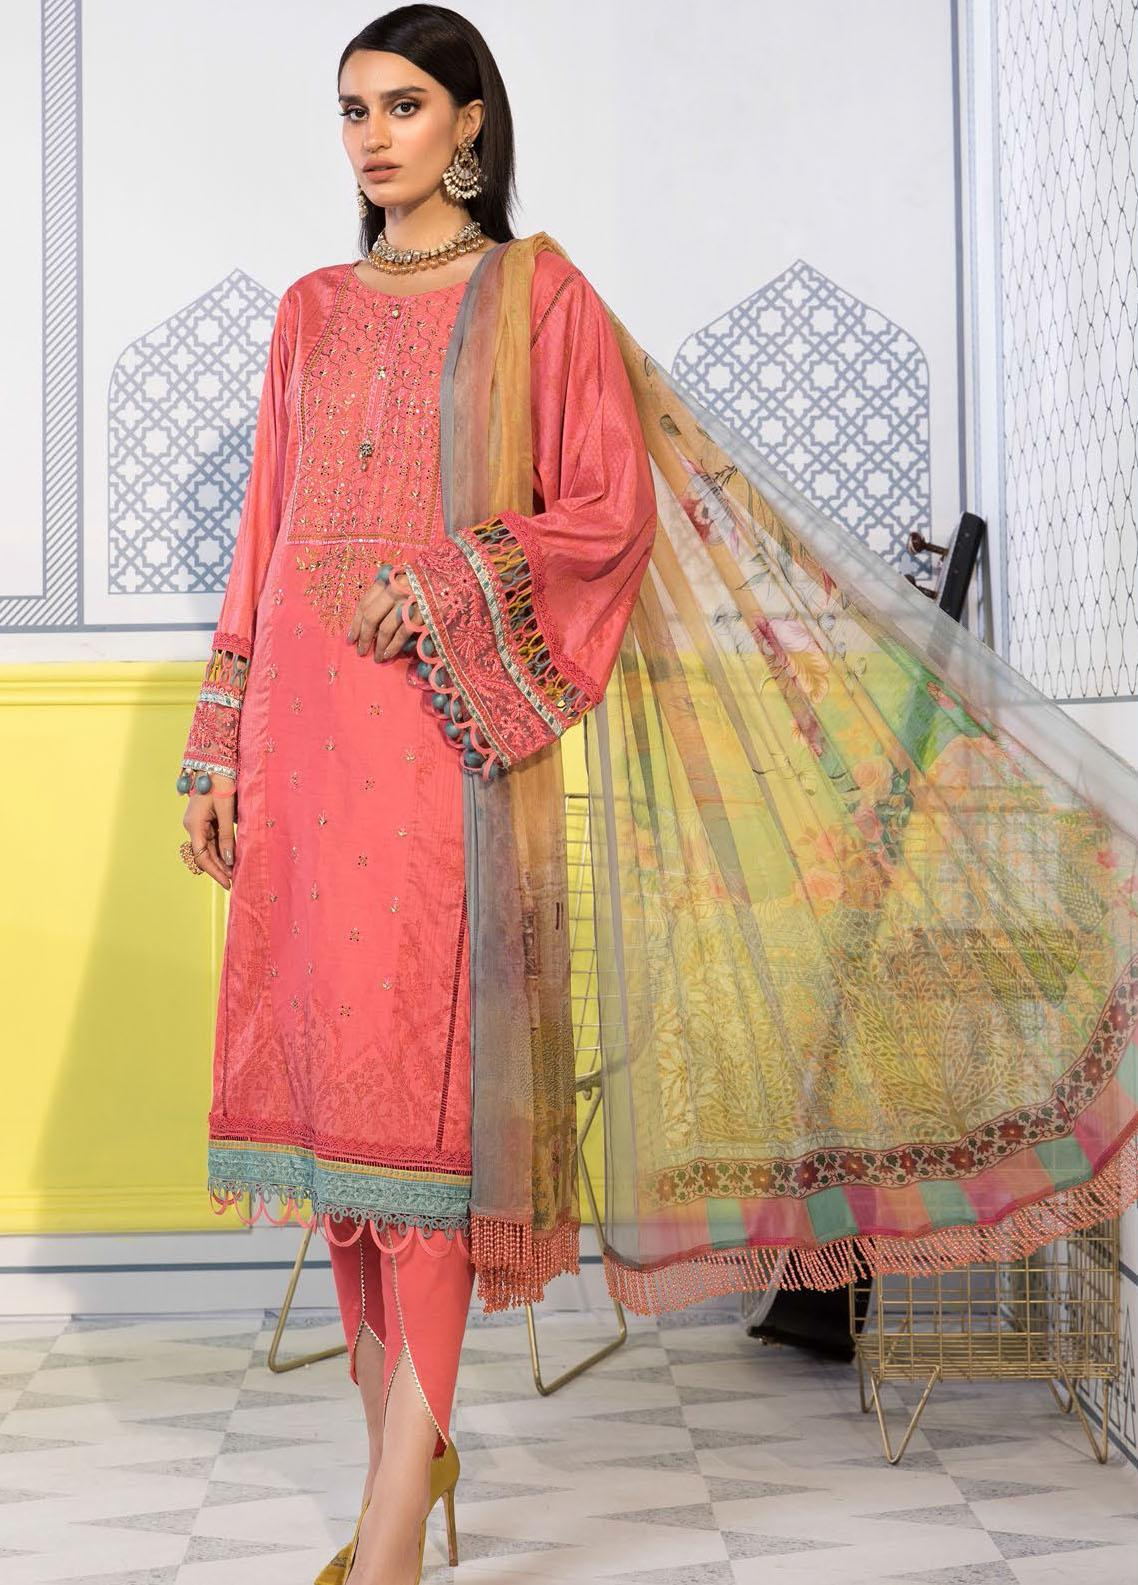 Mprints By Maria B Printed Lawn Suits Unstitched 3 Piece MB21-MP2 1107-A - Summer Collection